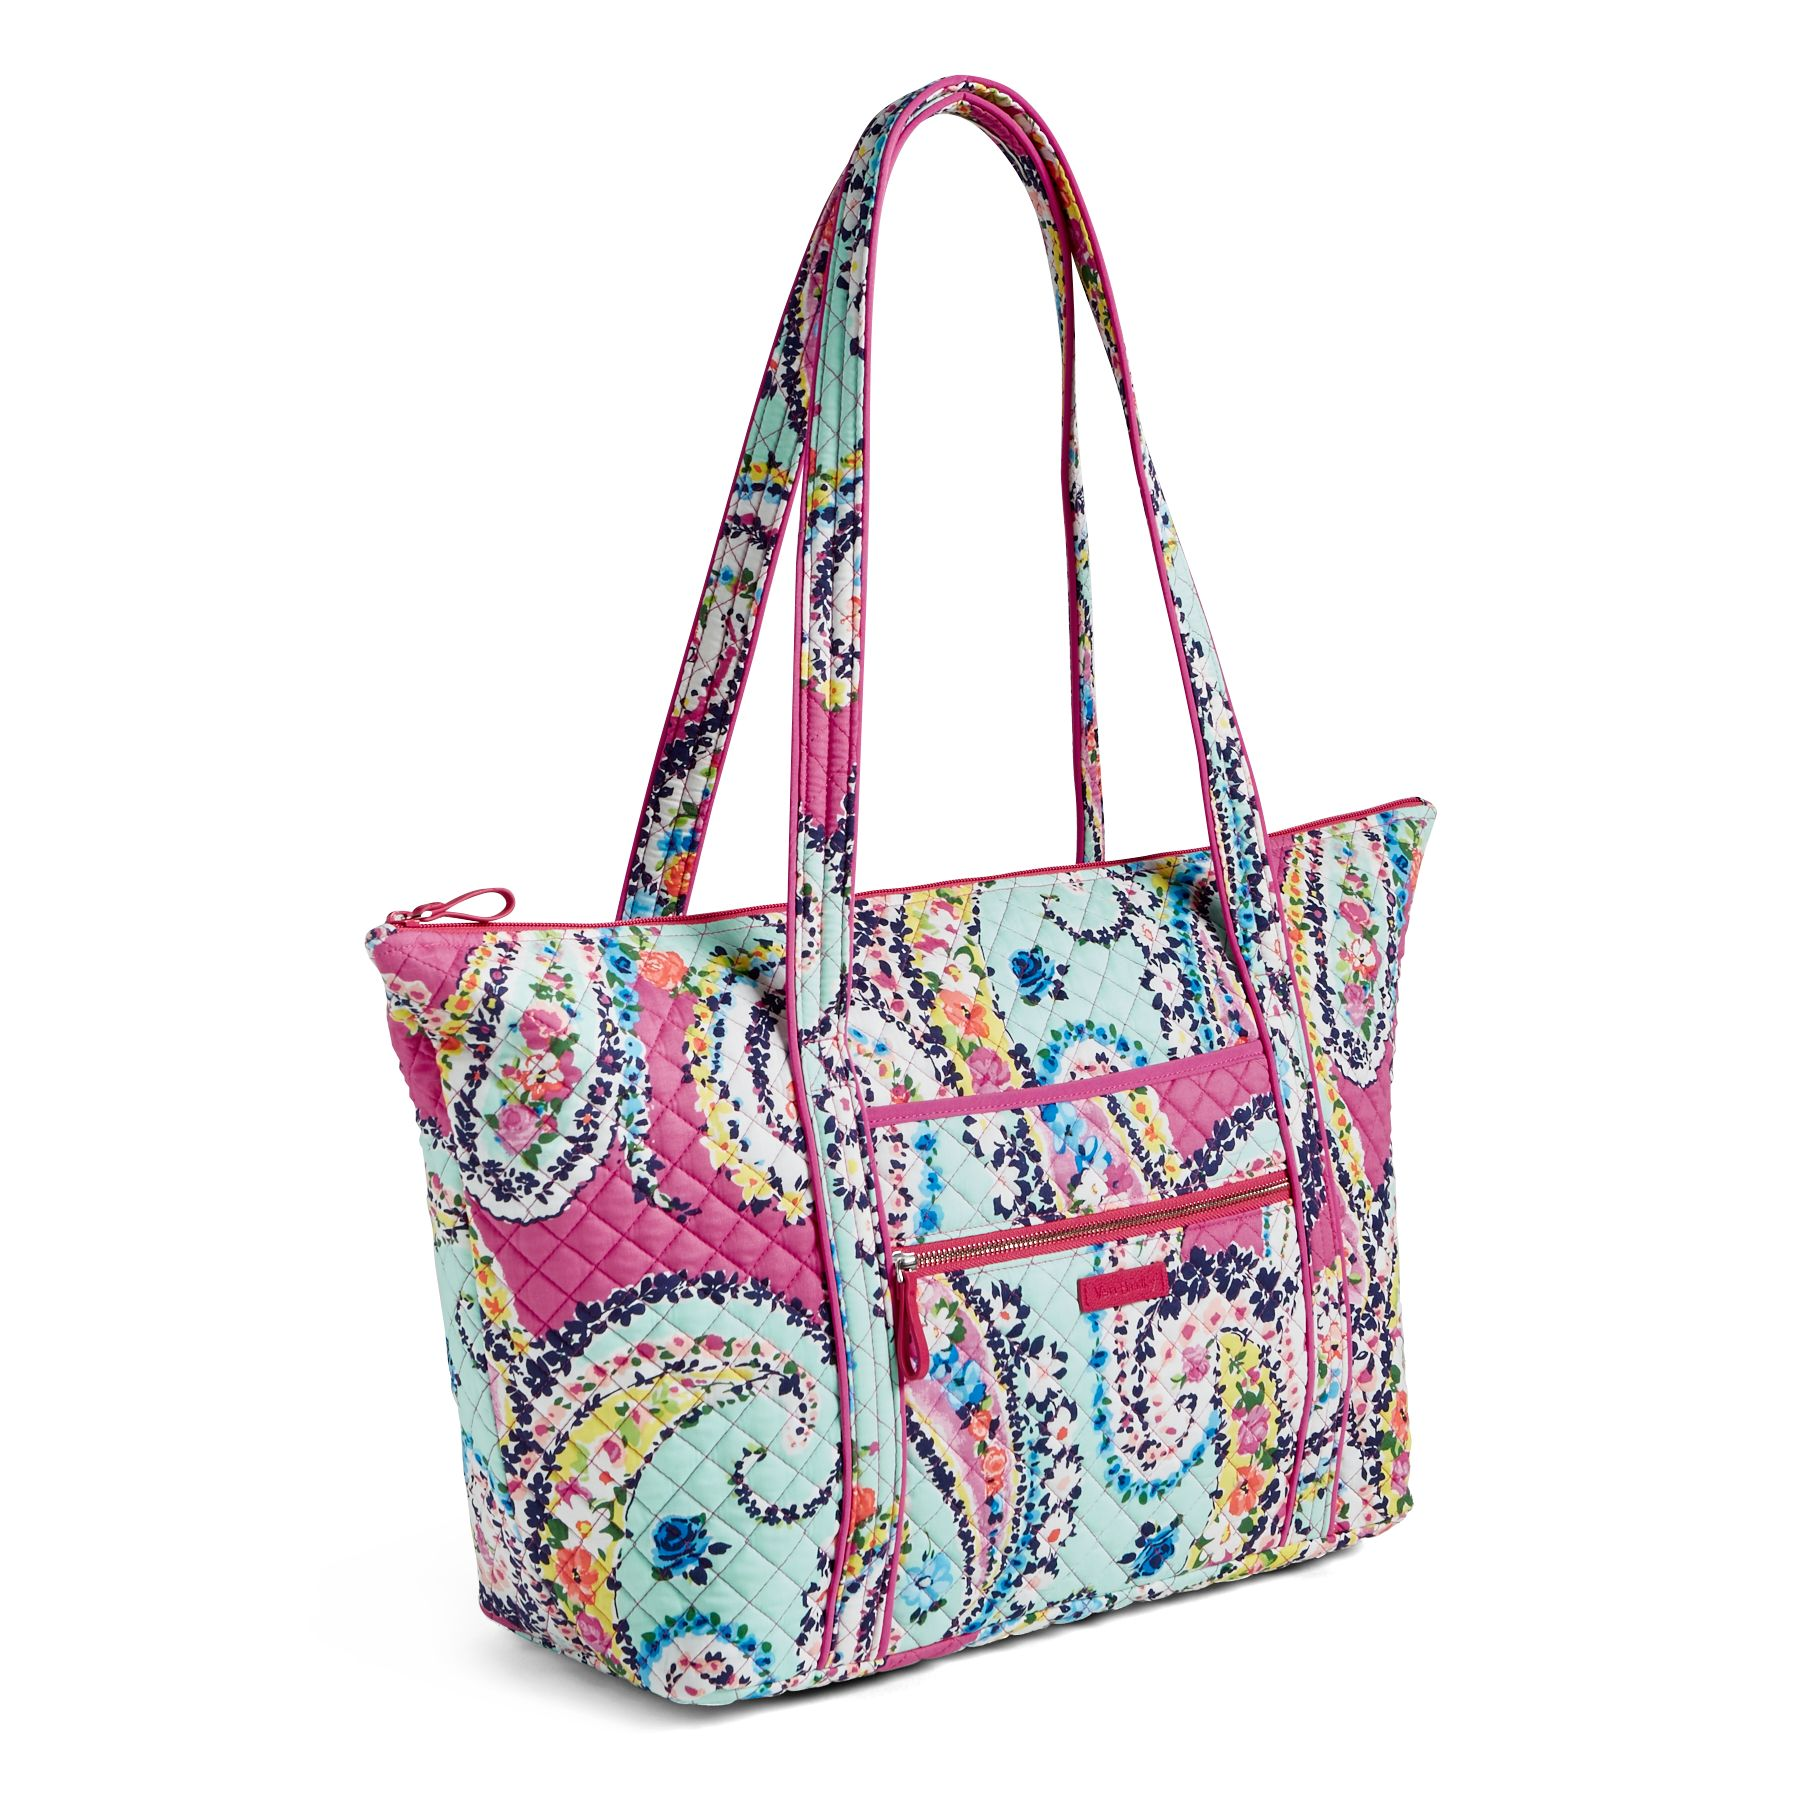 Iconic Miller Travel Bag   Vera Bradley b85c7420bc